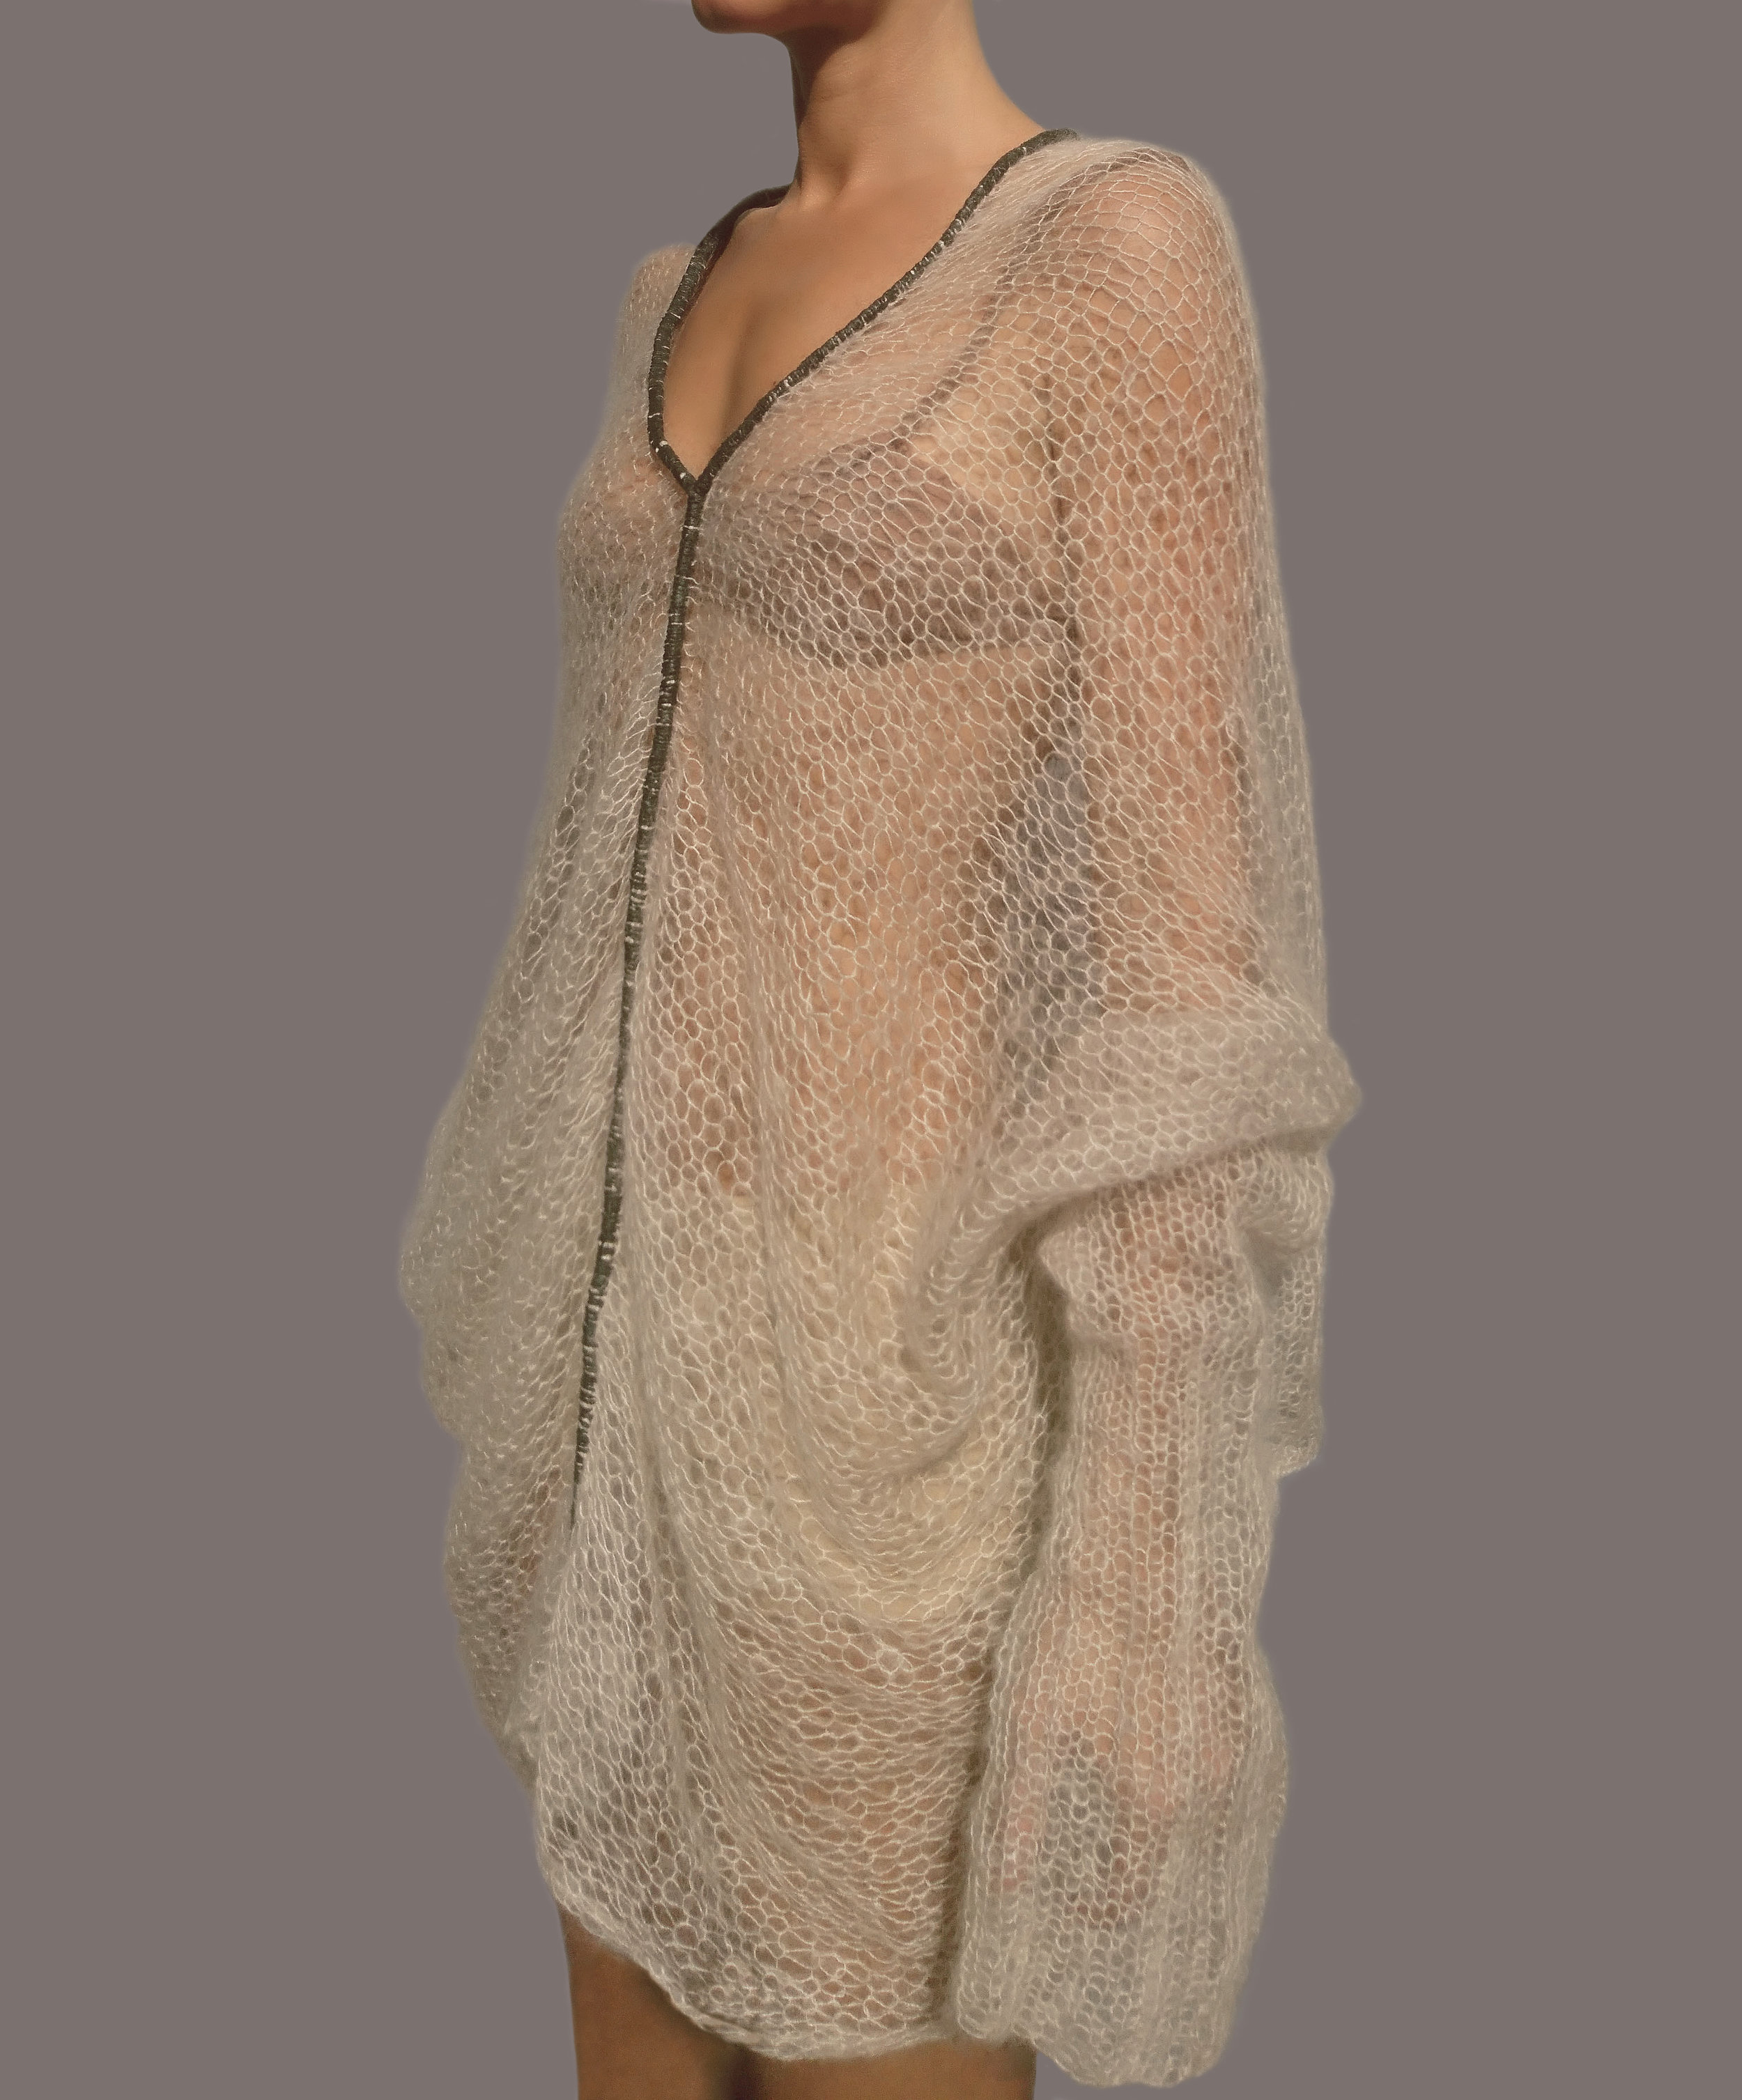 Cream Sweater Side Angle G.jpg